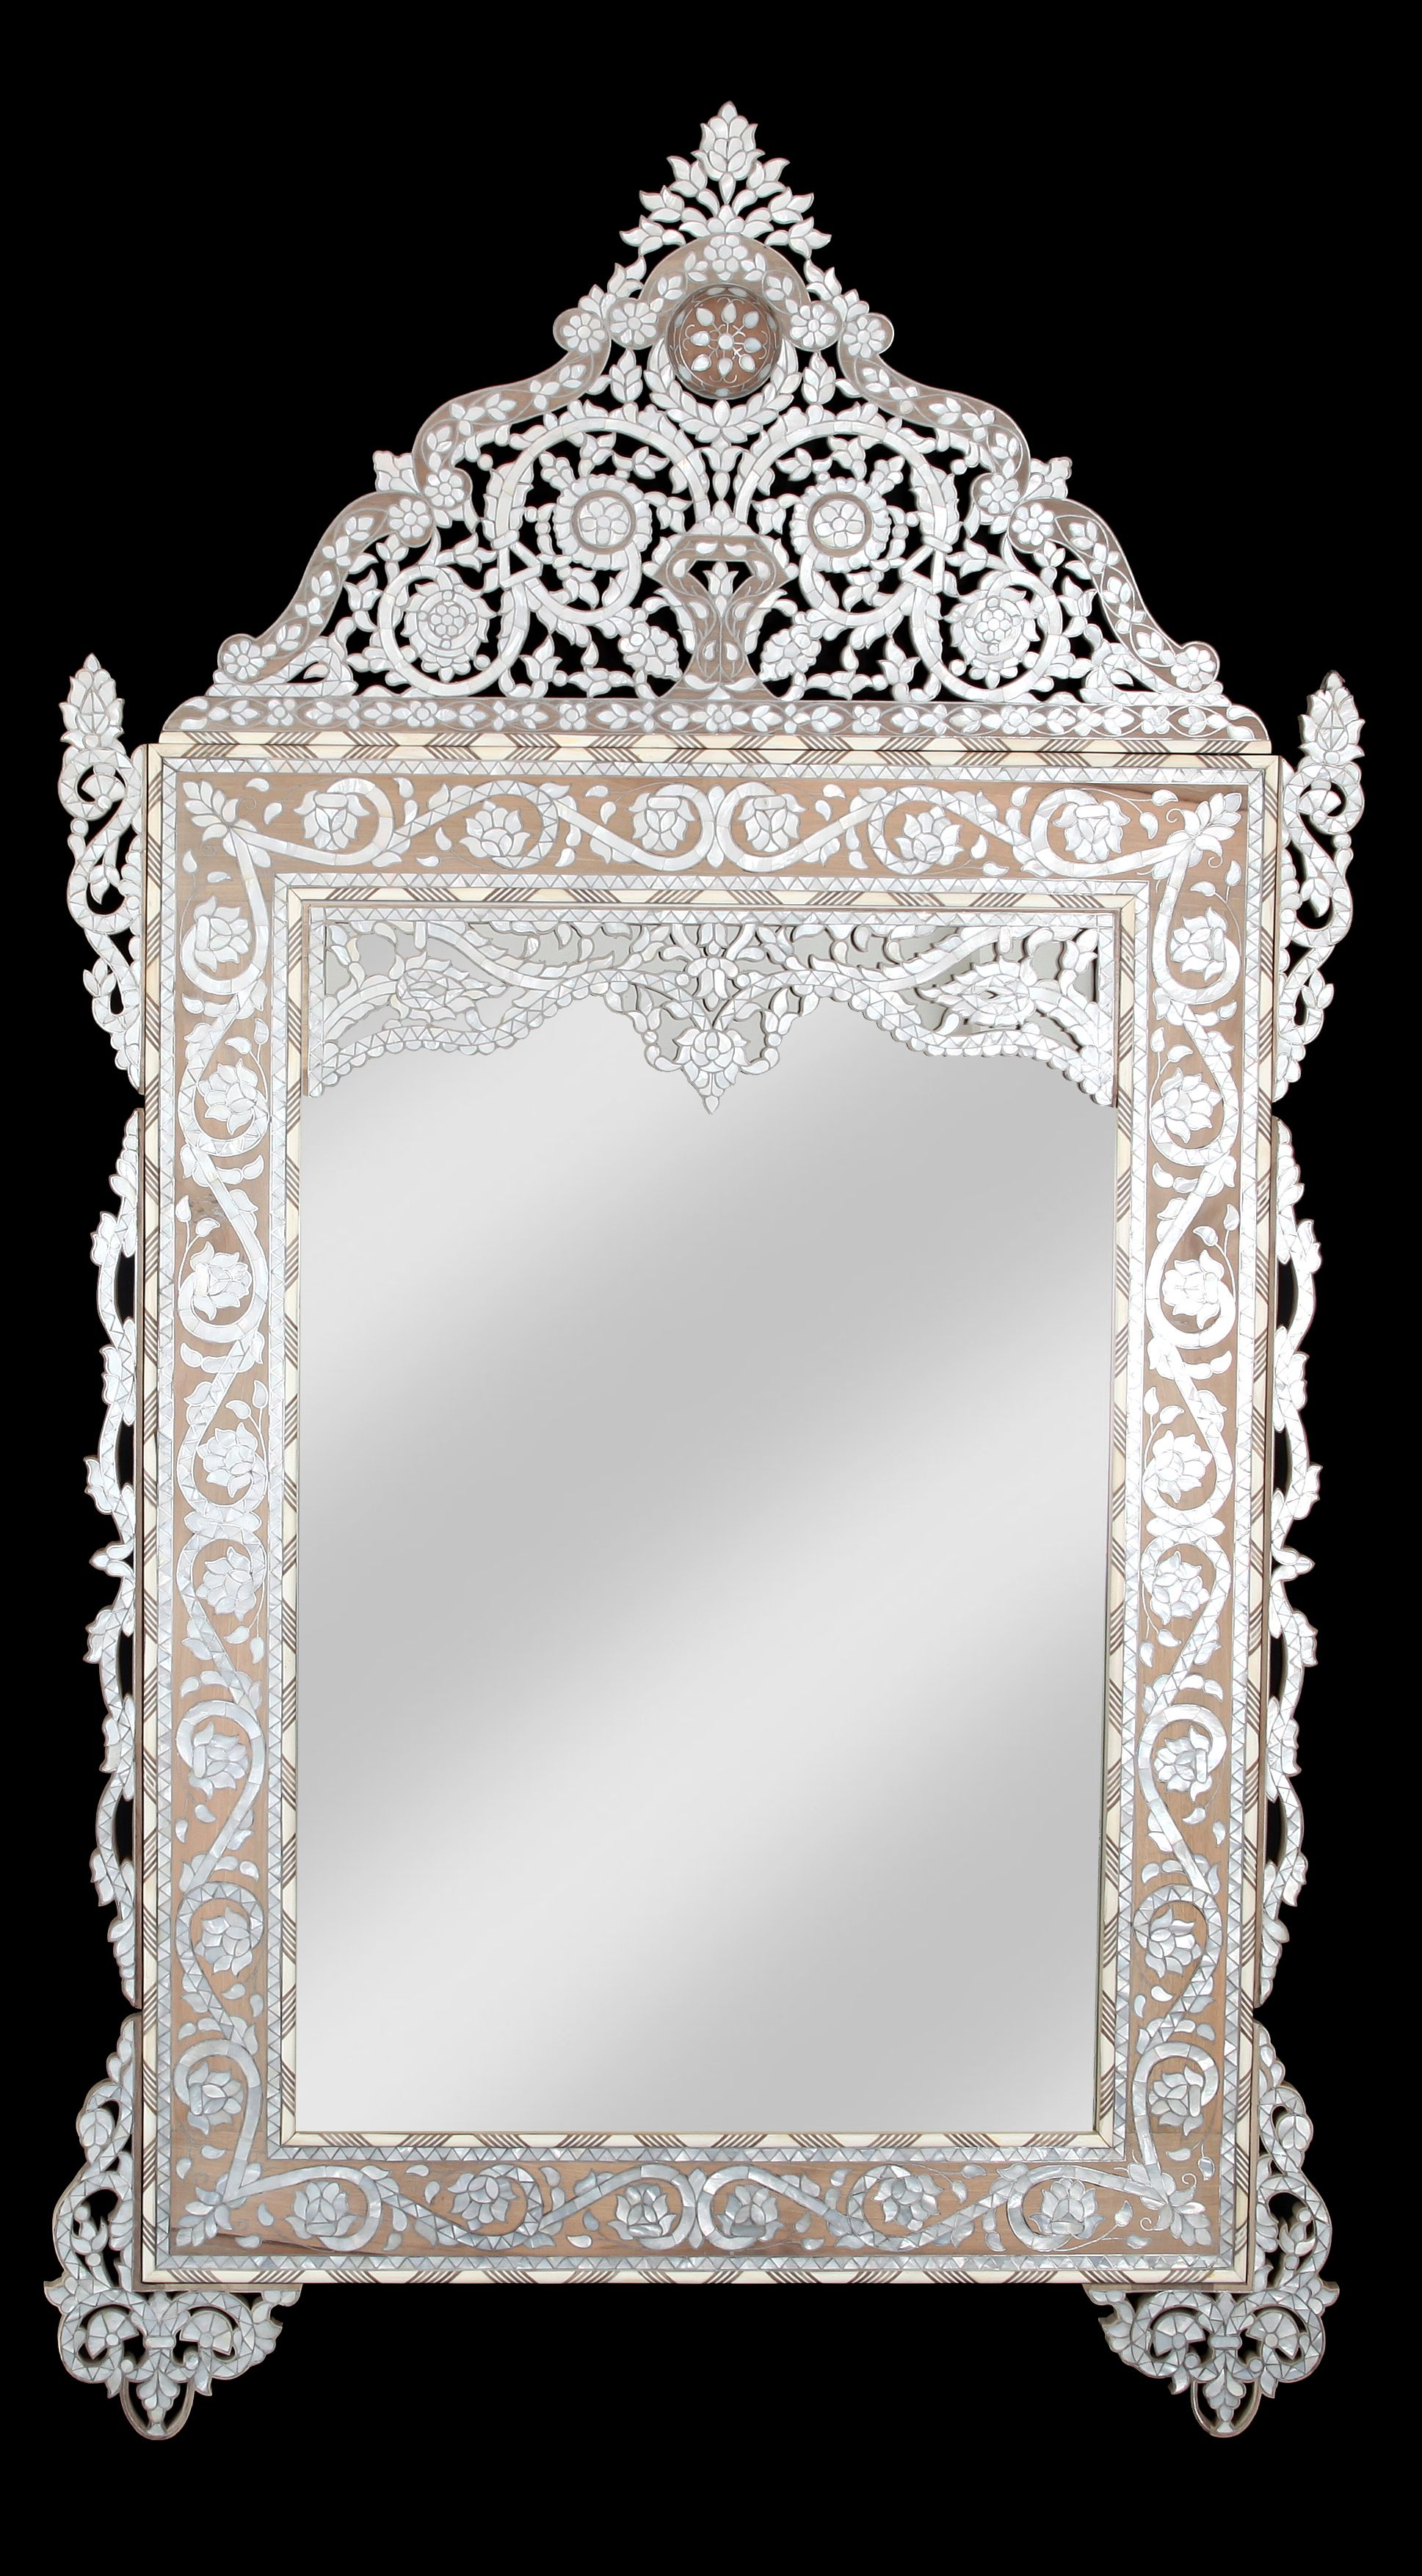 Mother Of Pearl Mirror Quickly Spruce Up An Old Mirror Mirror Frame Diy Mother Of Pearl Mirror Diy Mirror